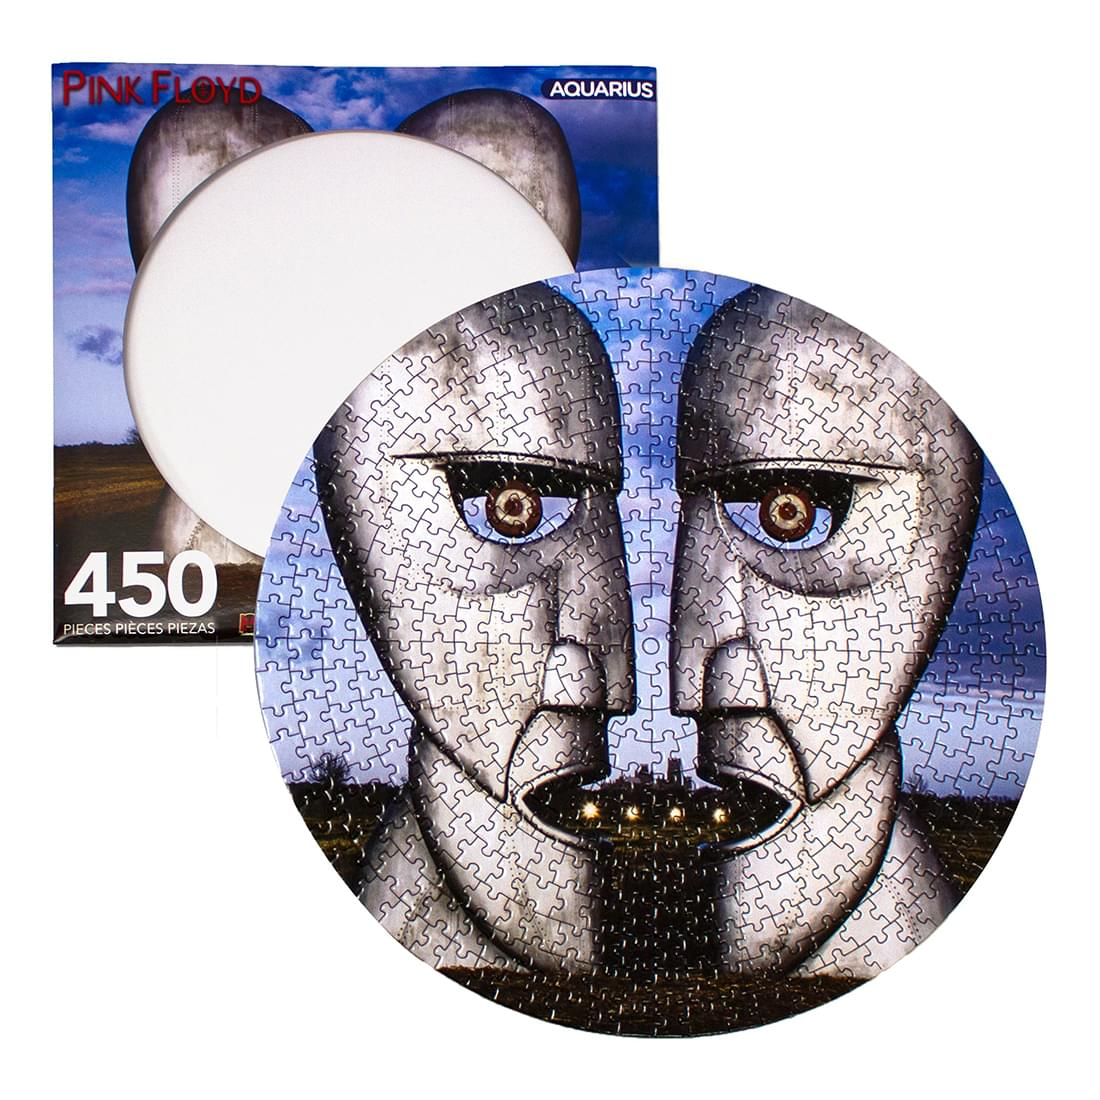 Pink Floyd Division Bell 450 Piece Picture Disc Jigsaw Puzzle